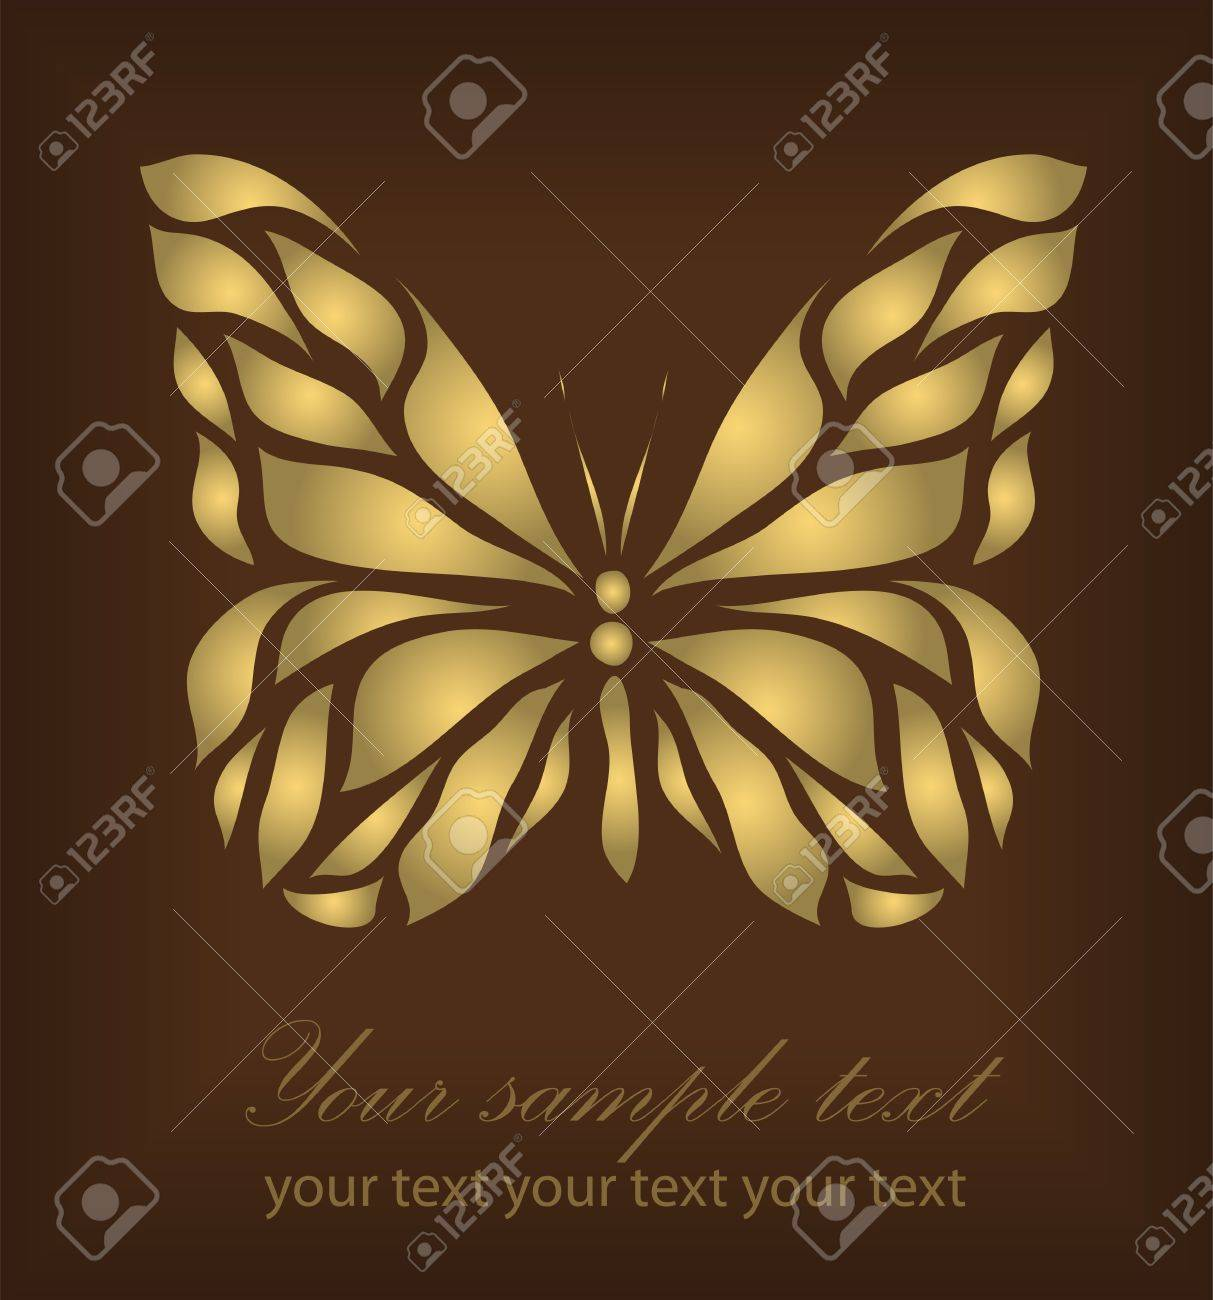 Vintage Ornament isolated on brown background with your text Stock Vector - 14387844